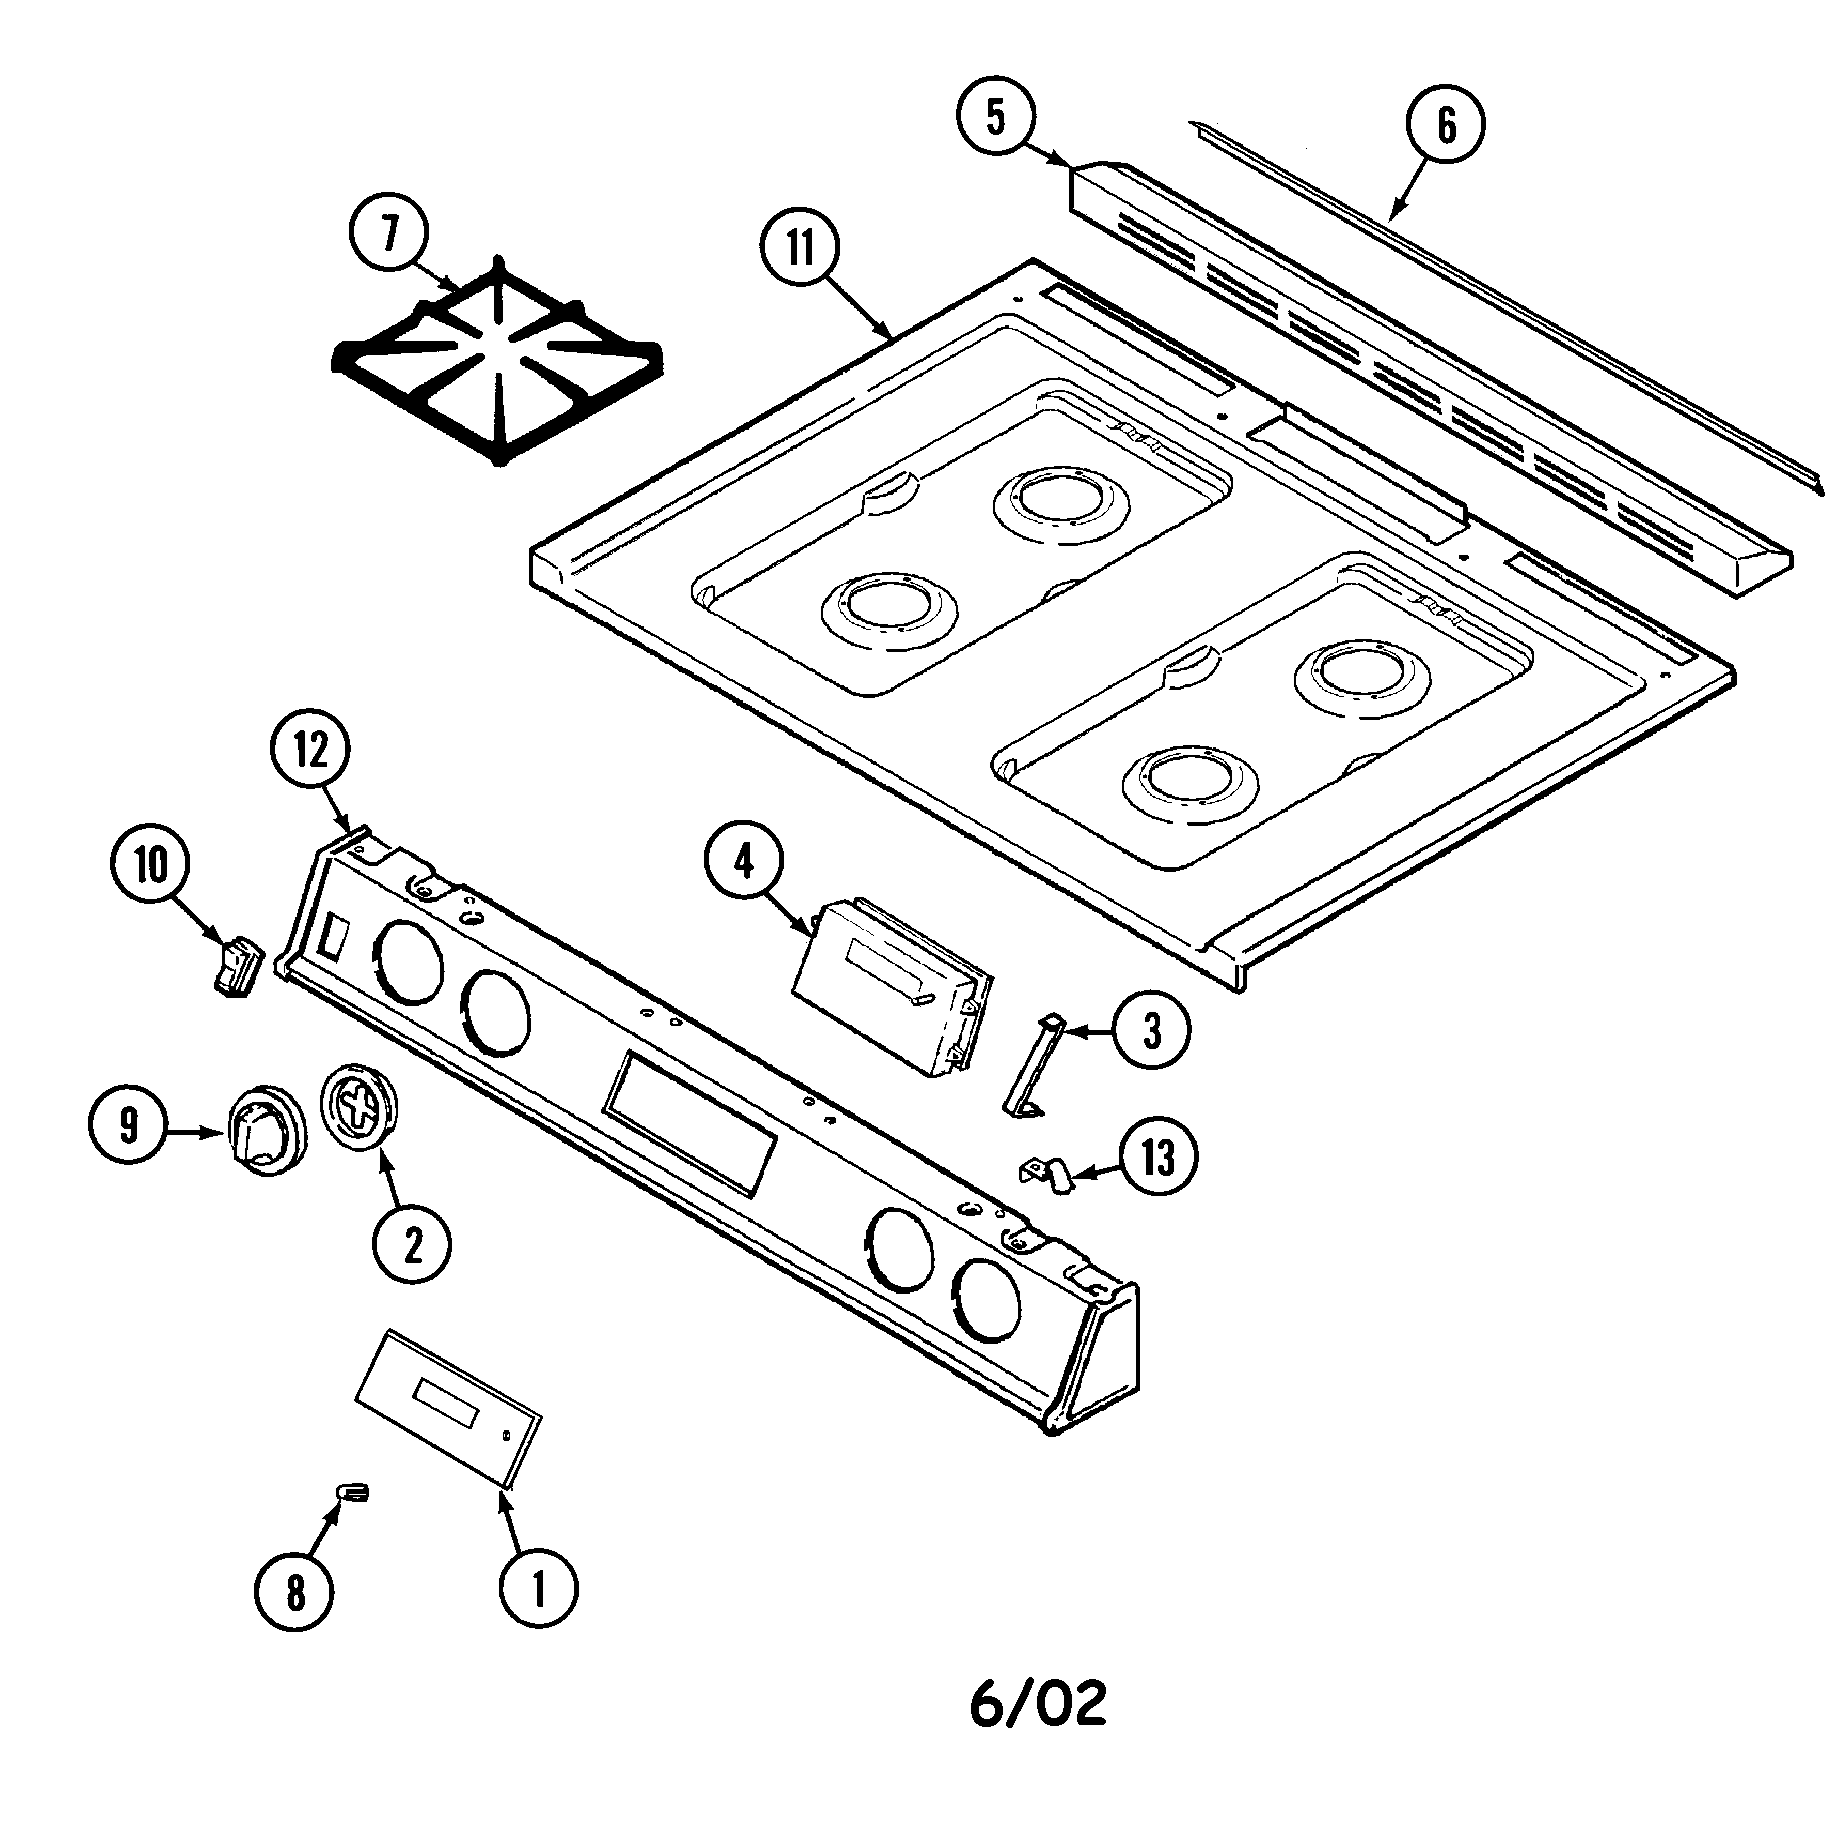 6498vta gas range top assembly parts diagram